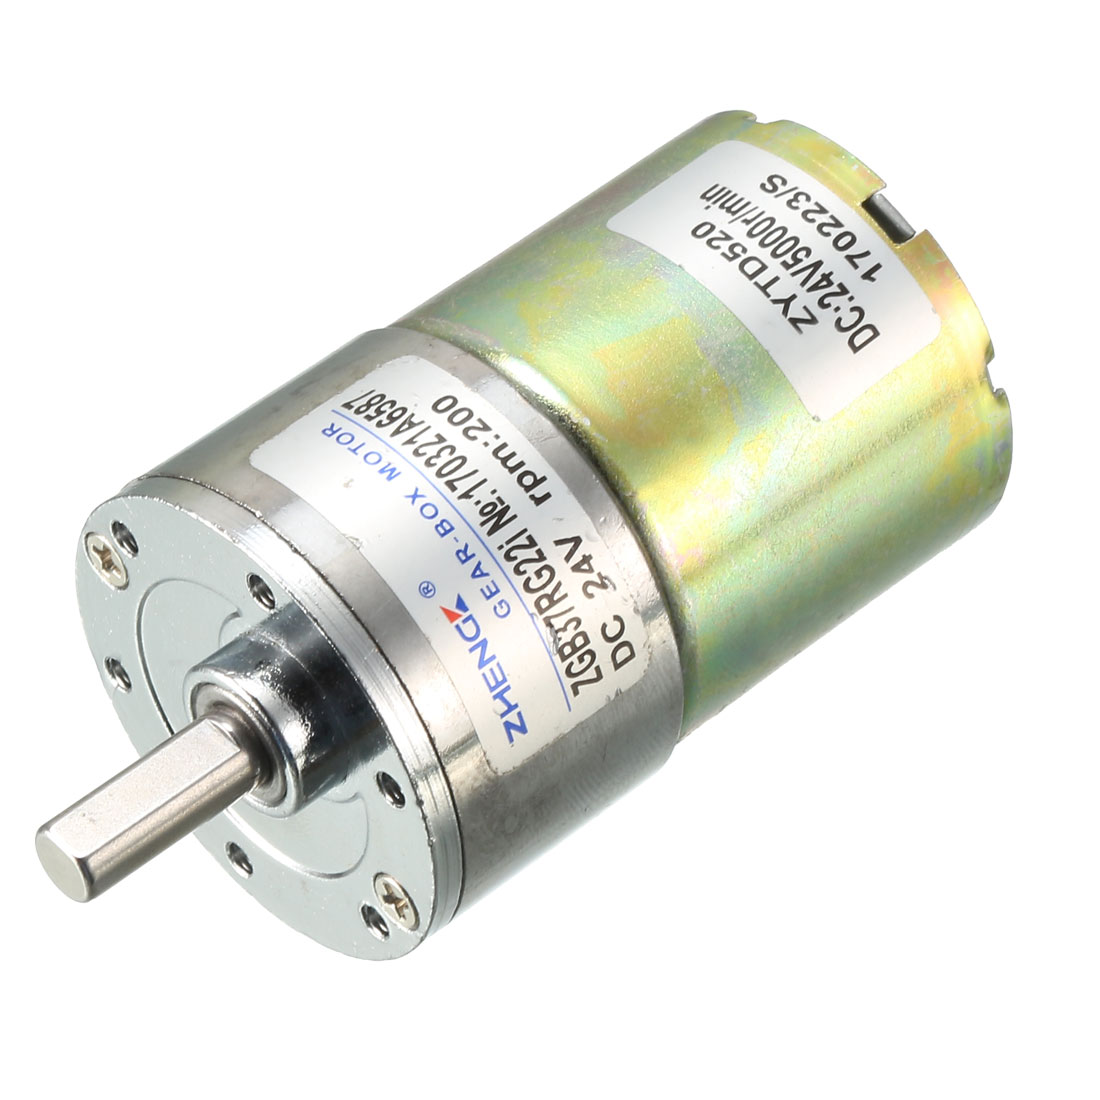 30RPM Output Speed 36mm Diameter 24V 0.33A DC Geared Motor